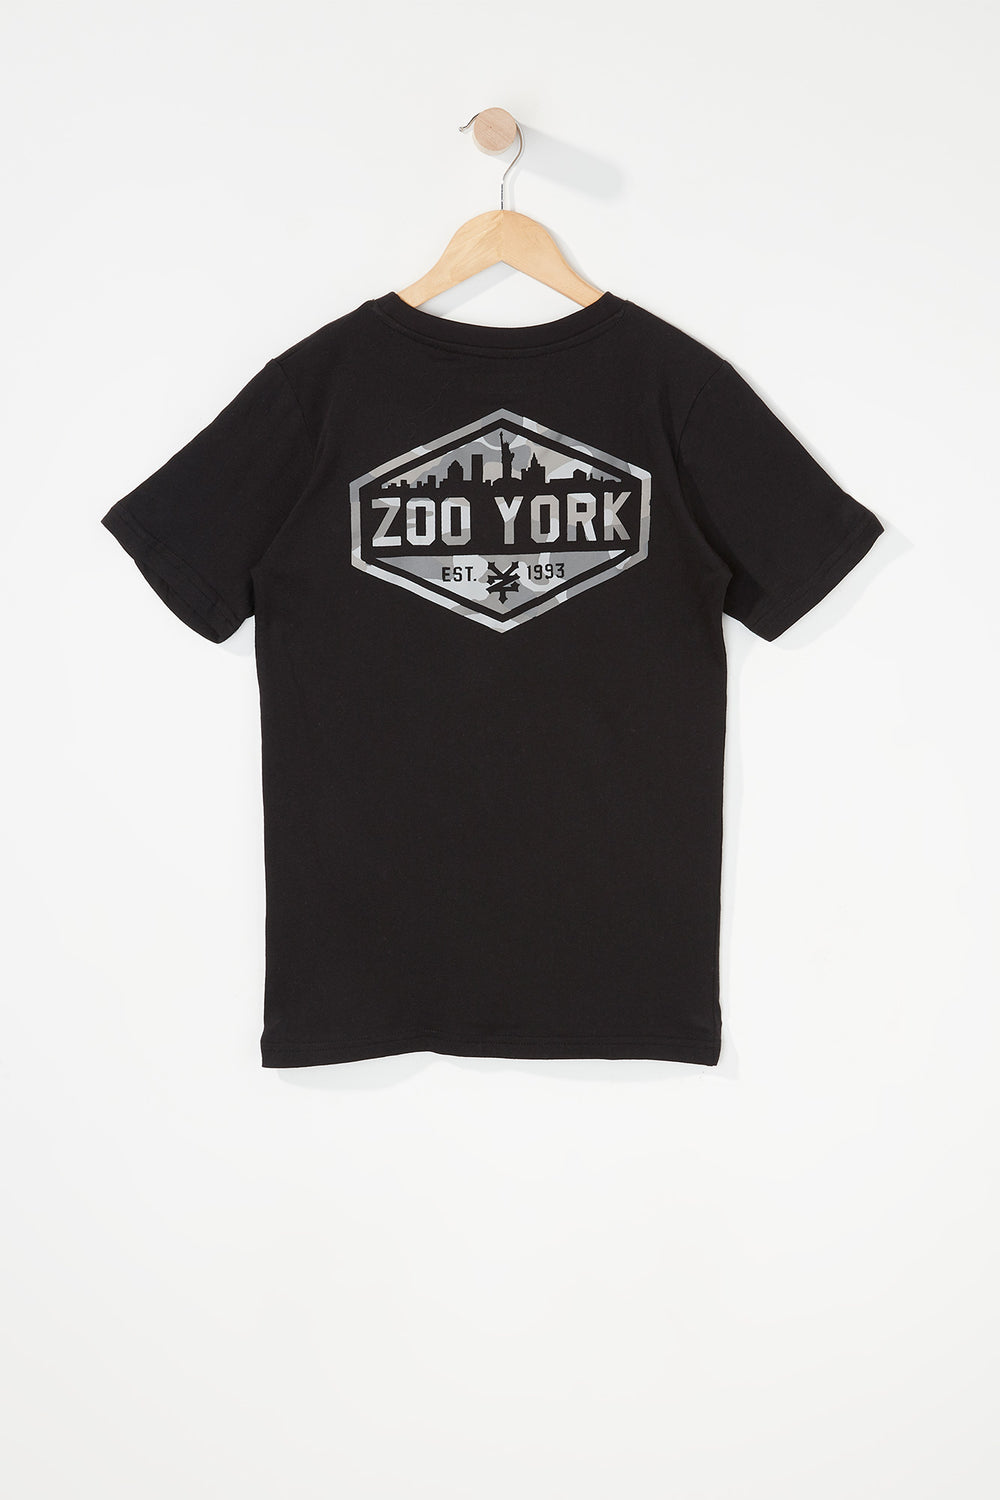 Zoo York Boys Camo Logo T-Shirt Black